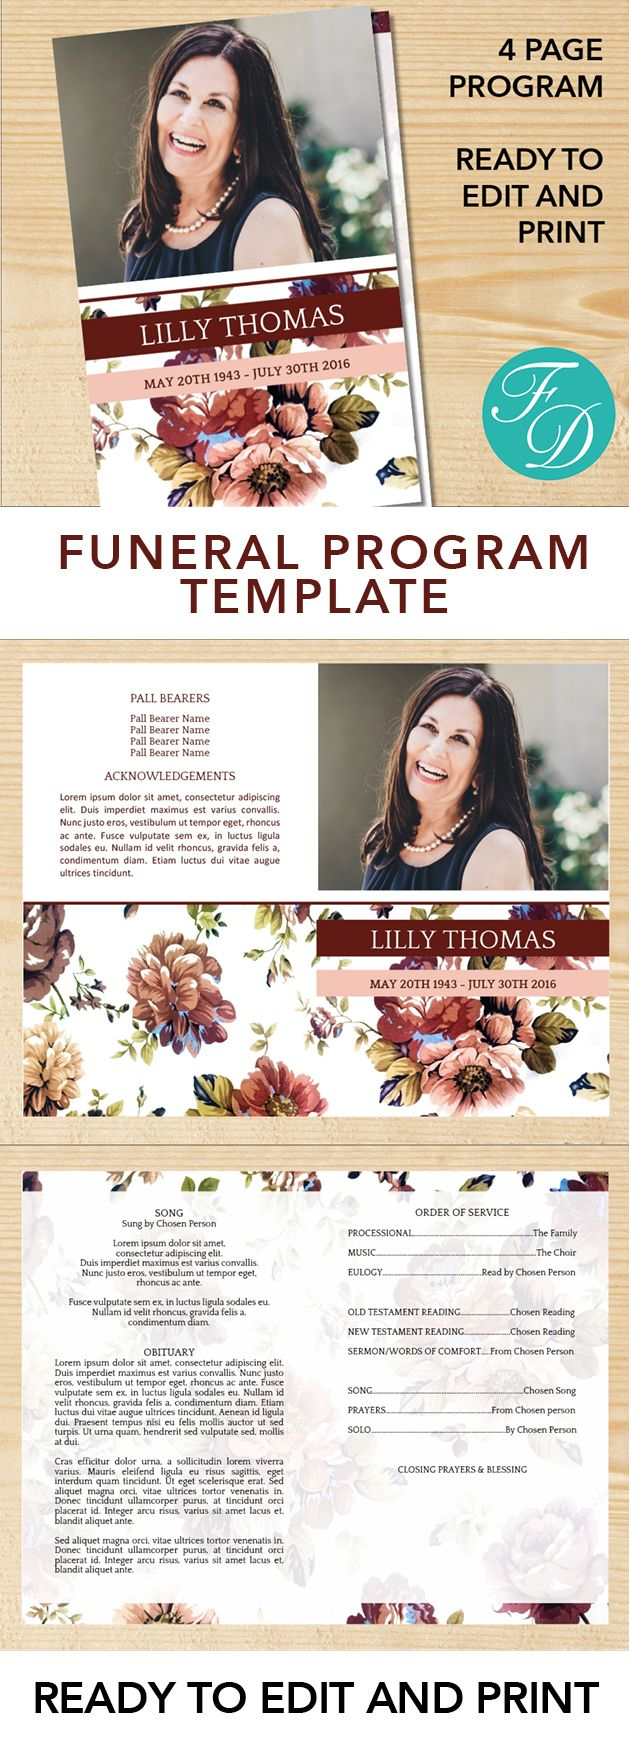 Vintage Printable Funeral program ready to edit & print Simply purchase your funeral templates, download, edit with Microsoft Word and print. #obituarytemplate #memorialprogram #funeralprograms #funeraltemplate #printableprogram #celebrationoflife